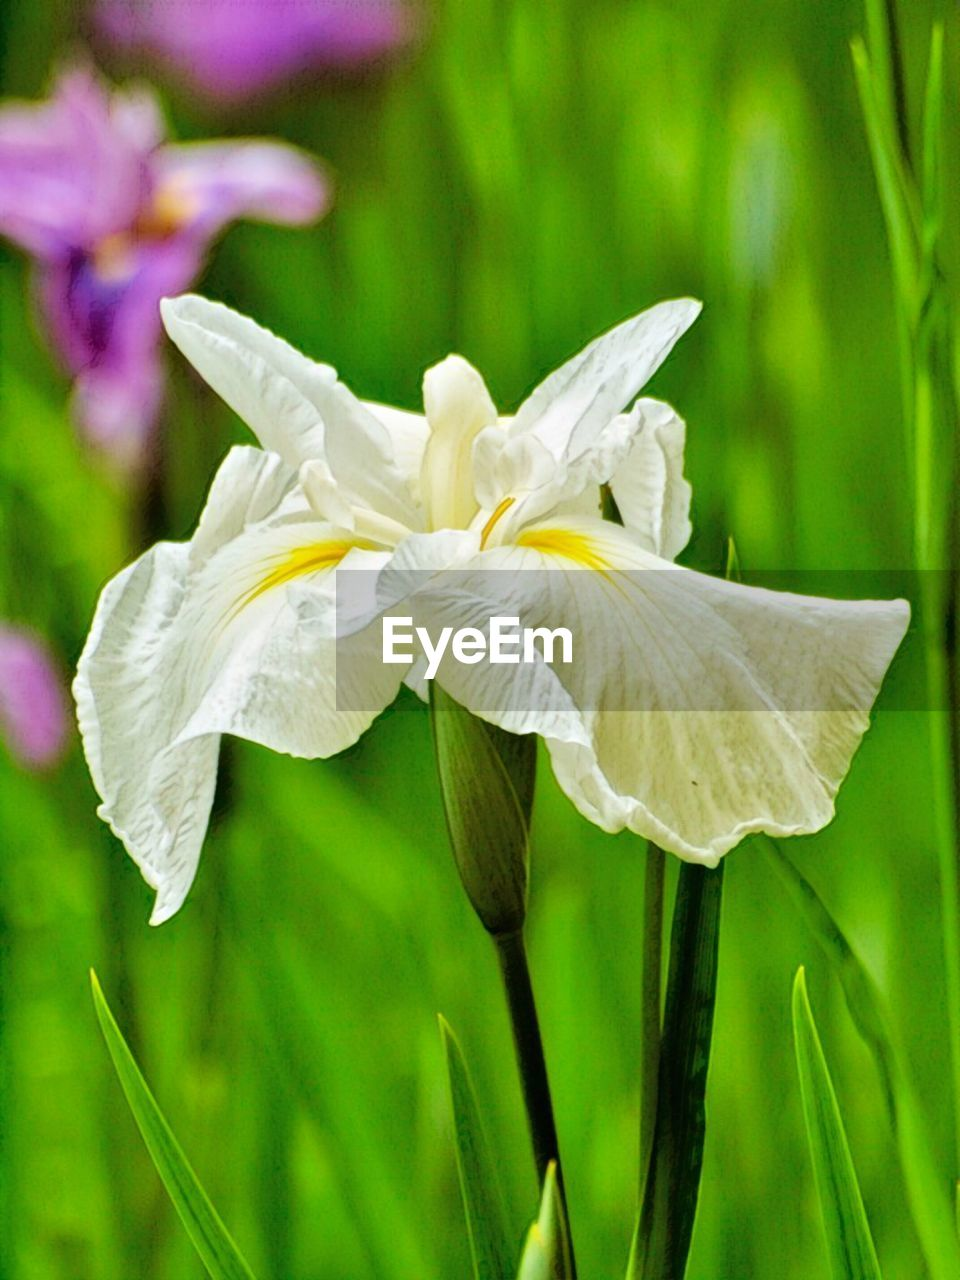 flowering plant, plant, flower, freshness, beauty in nature, vulnerability, fragility, petal, growth, close-up, inflorescence, flower head, focus on foreground, nature, no people, green color, white color, day, botany, outdoors, iris - plant, purple